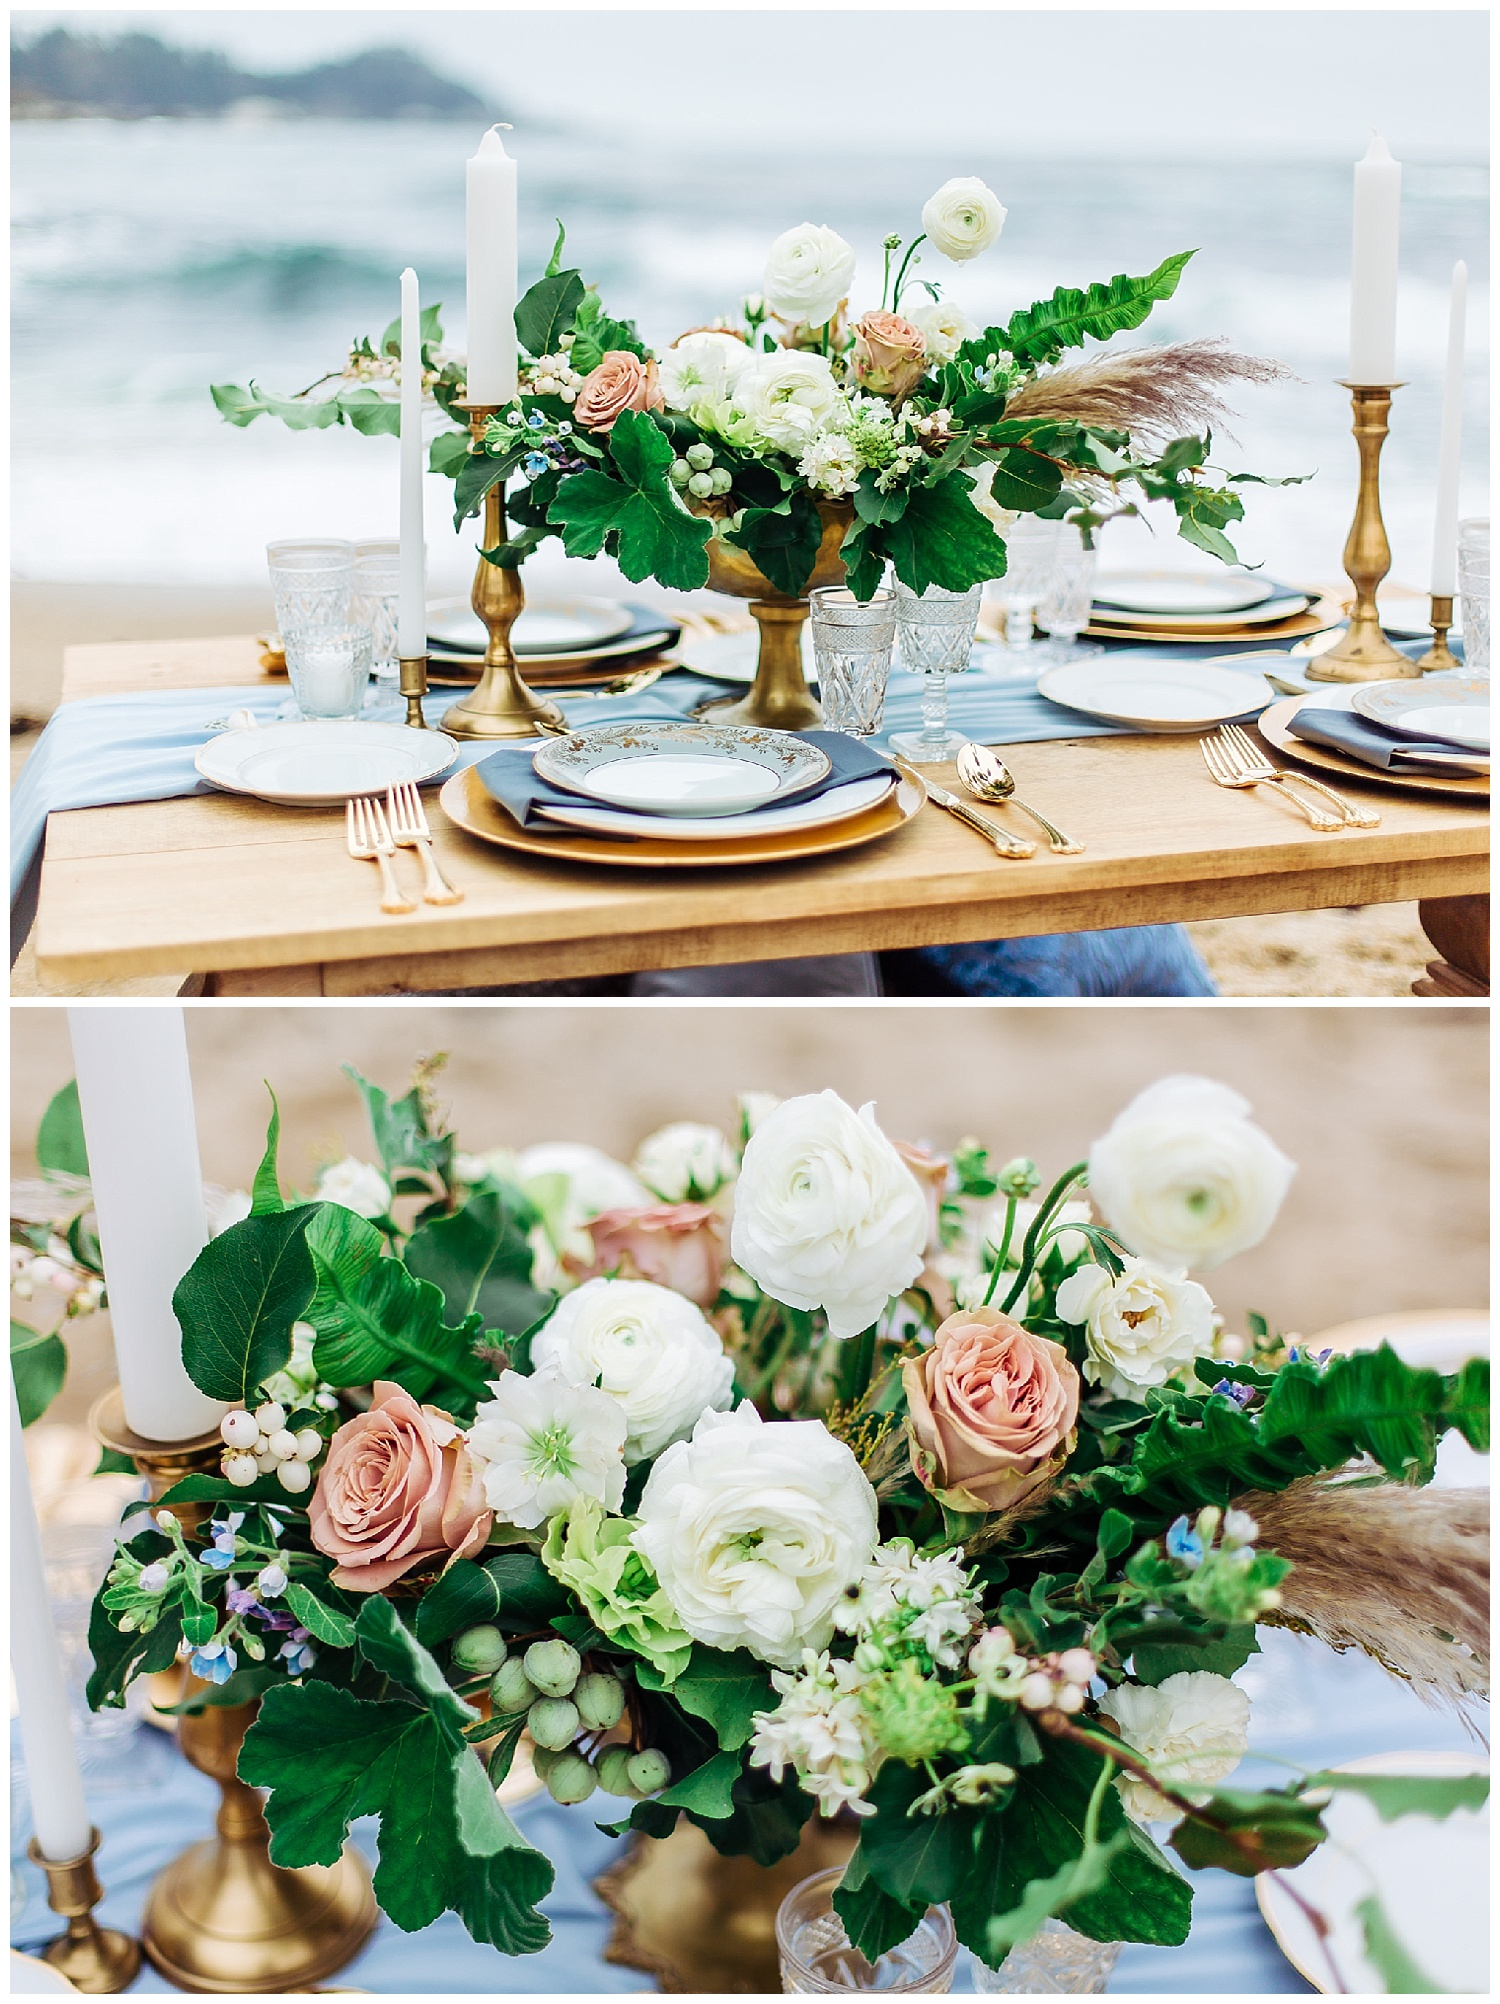 big-sur-wedding-table-setting-and-flowers.jpg